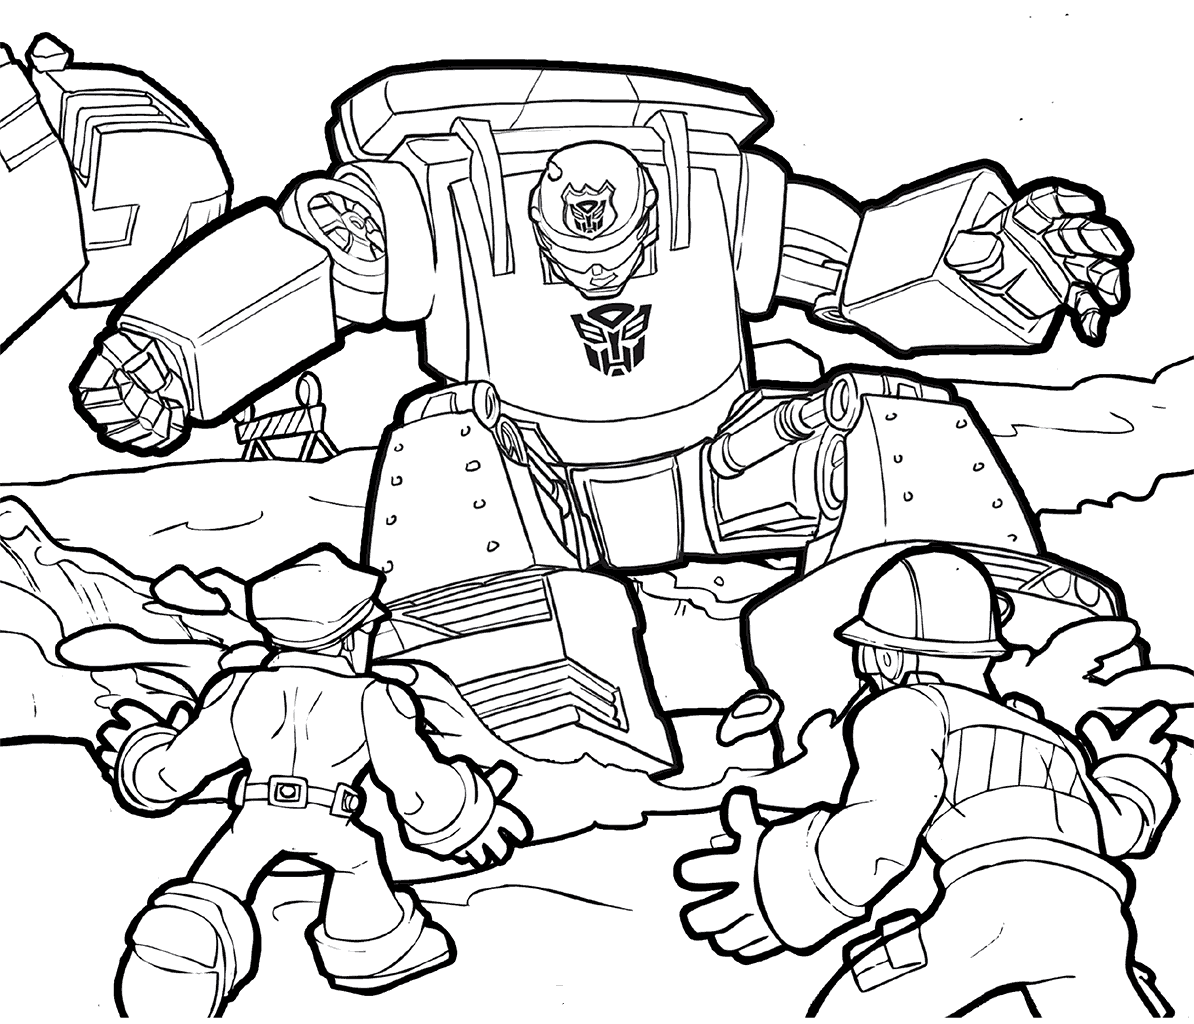 Transformers Rescue Bots Chase Coloring Page Cartoon Coloring Pages Transformers Coloring Pages Coloring Pages